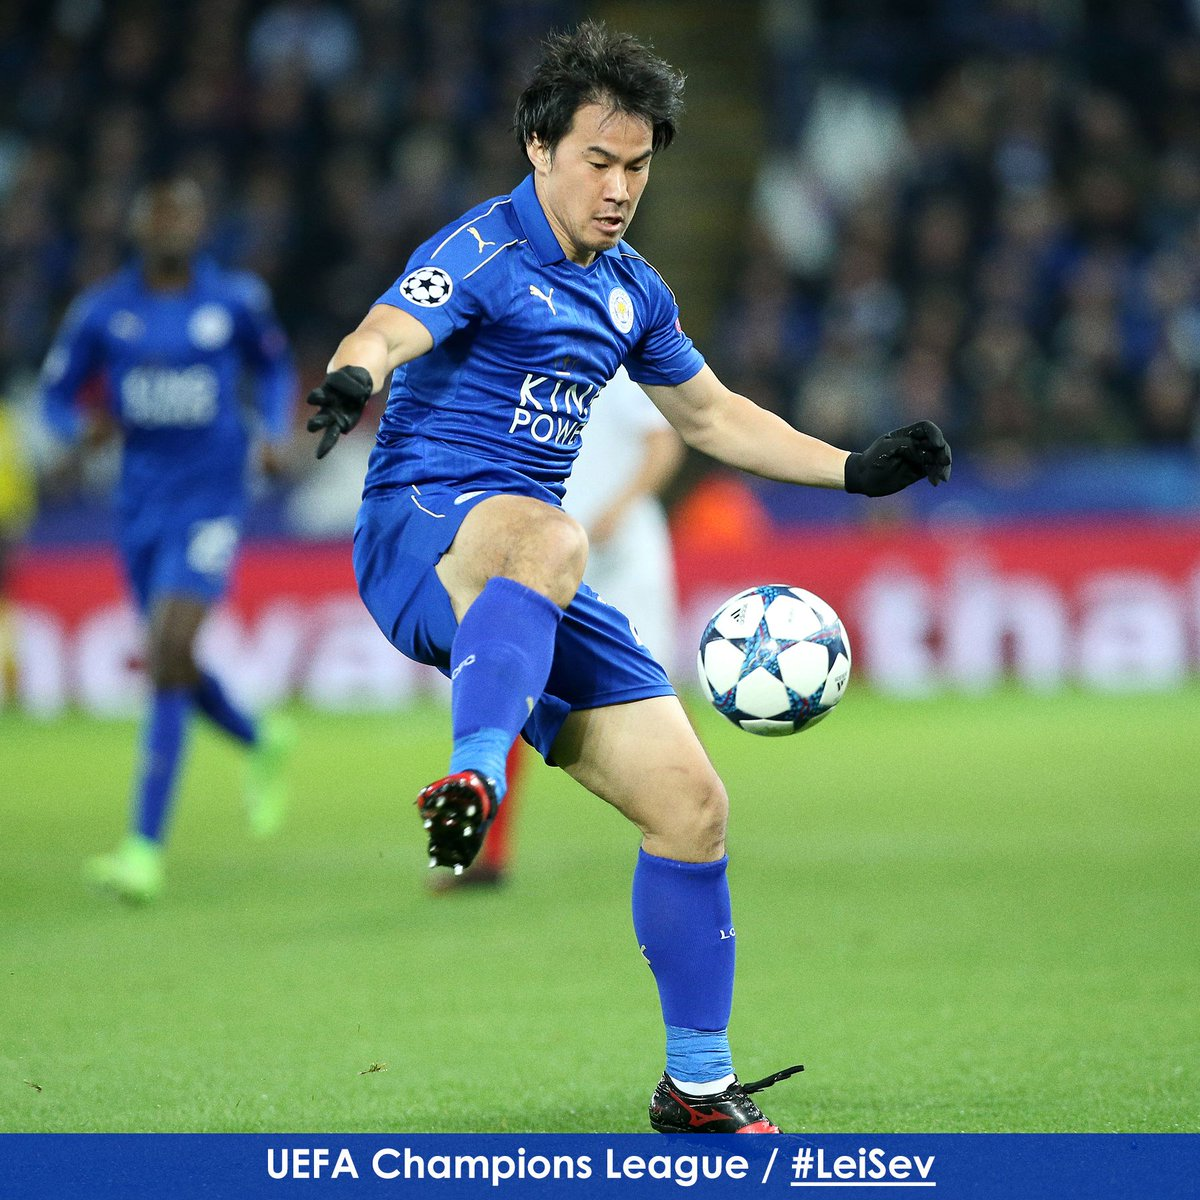 Shinji Okazaki finds space to turn in the early stages at Leicester City Stadium